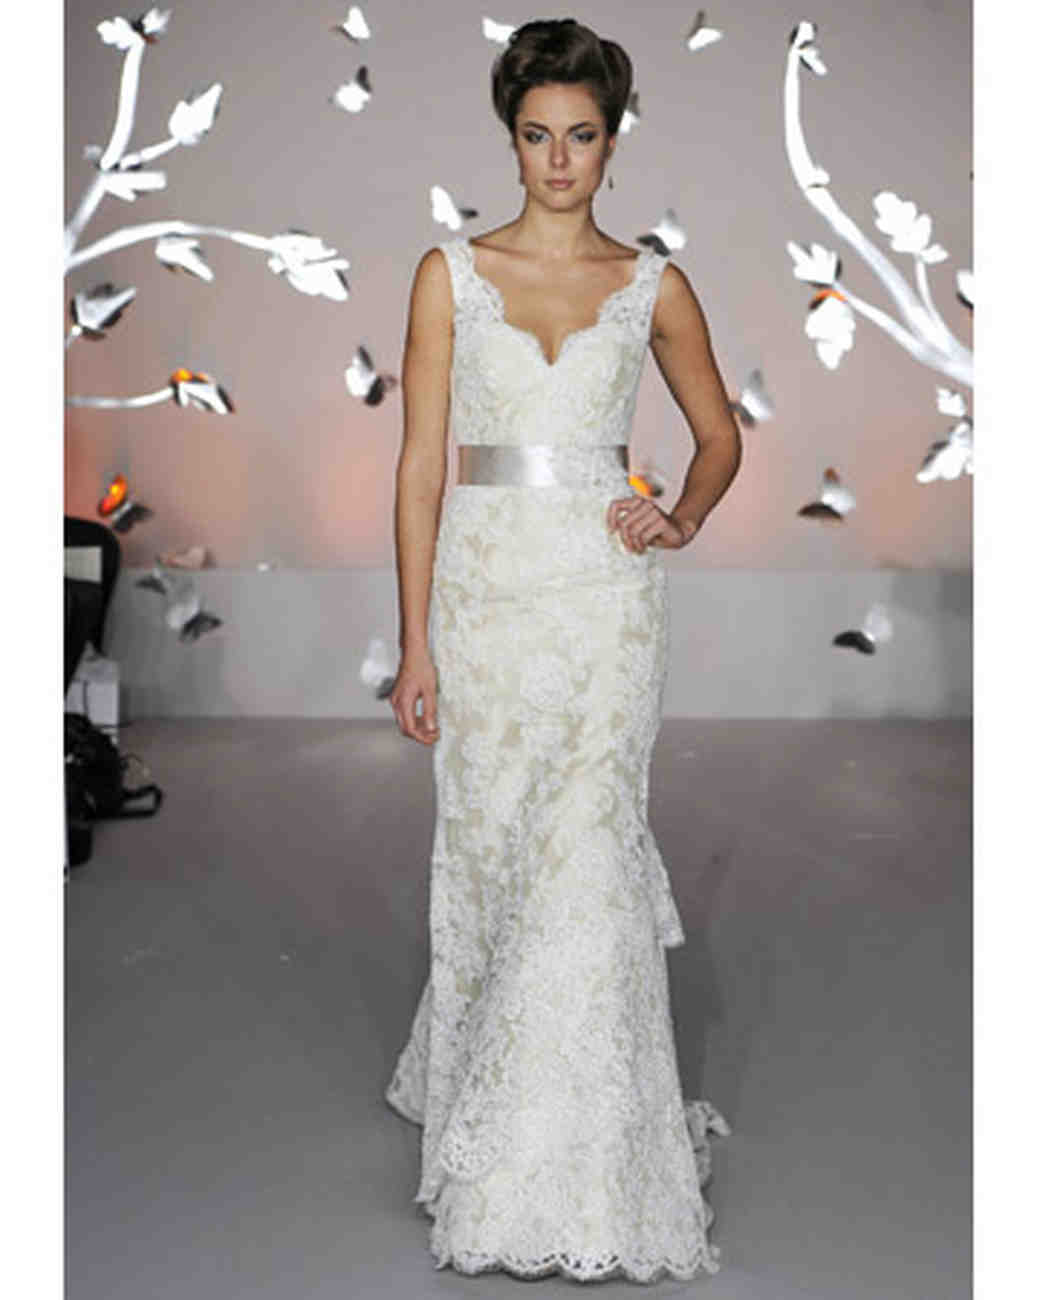 Modern lace wedding dresses from spring 2012 bridal fashion week alvina valenta junglespirit Gallery